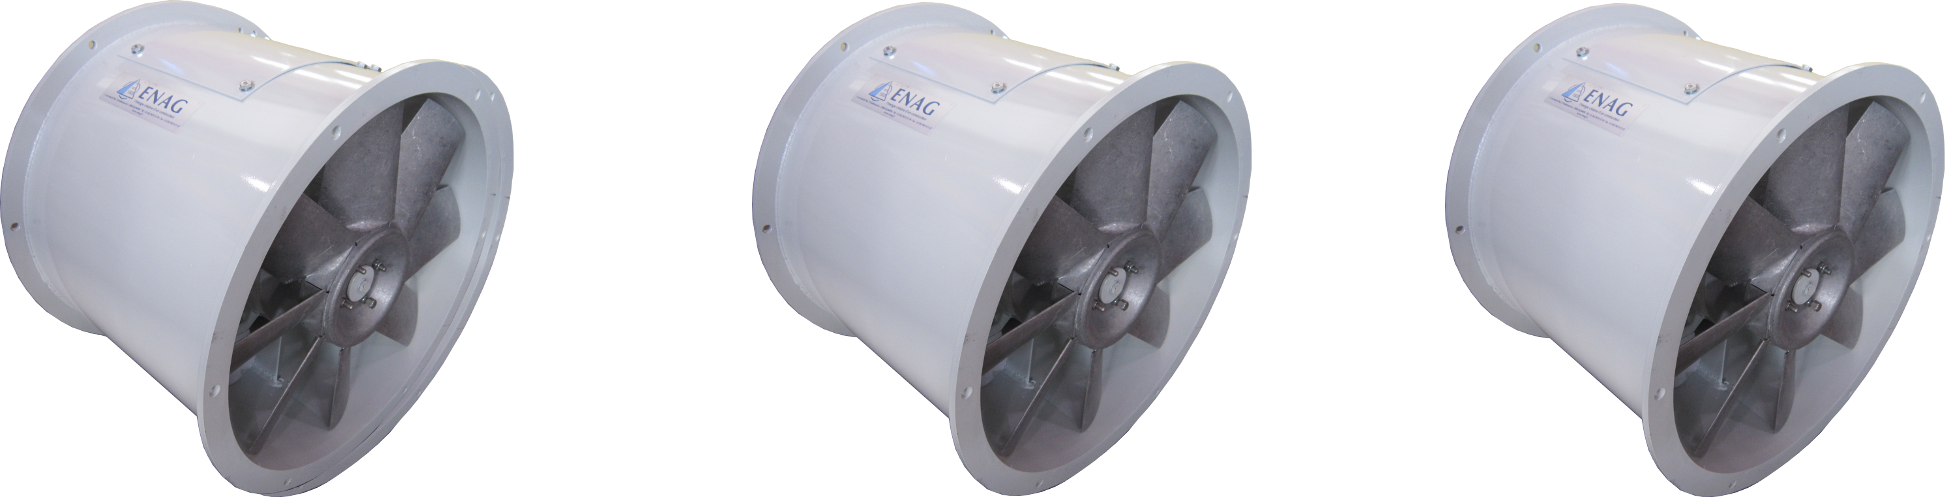 Fans & Marine Electrical Equipment